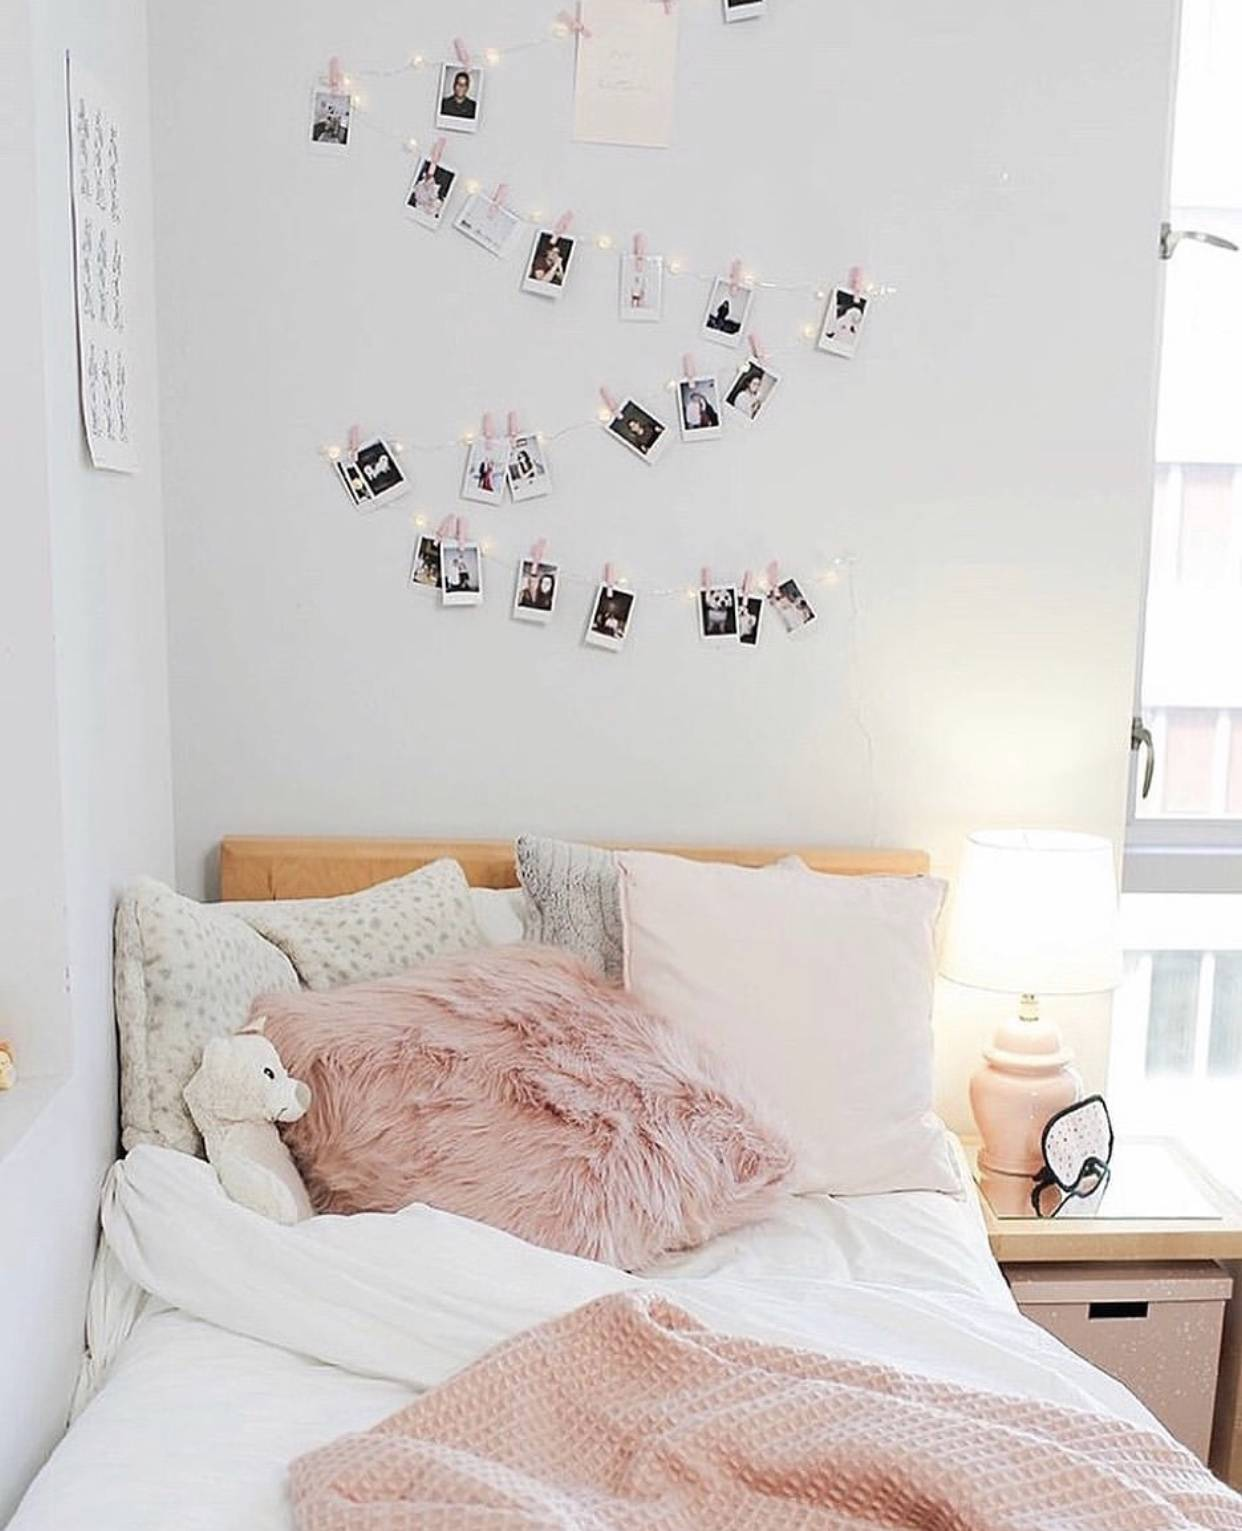 Simple Decorating Ideas To Make Your Room Look Amazing: VSCO Room Ideas: How To Create A Cute Dorm Room